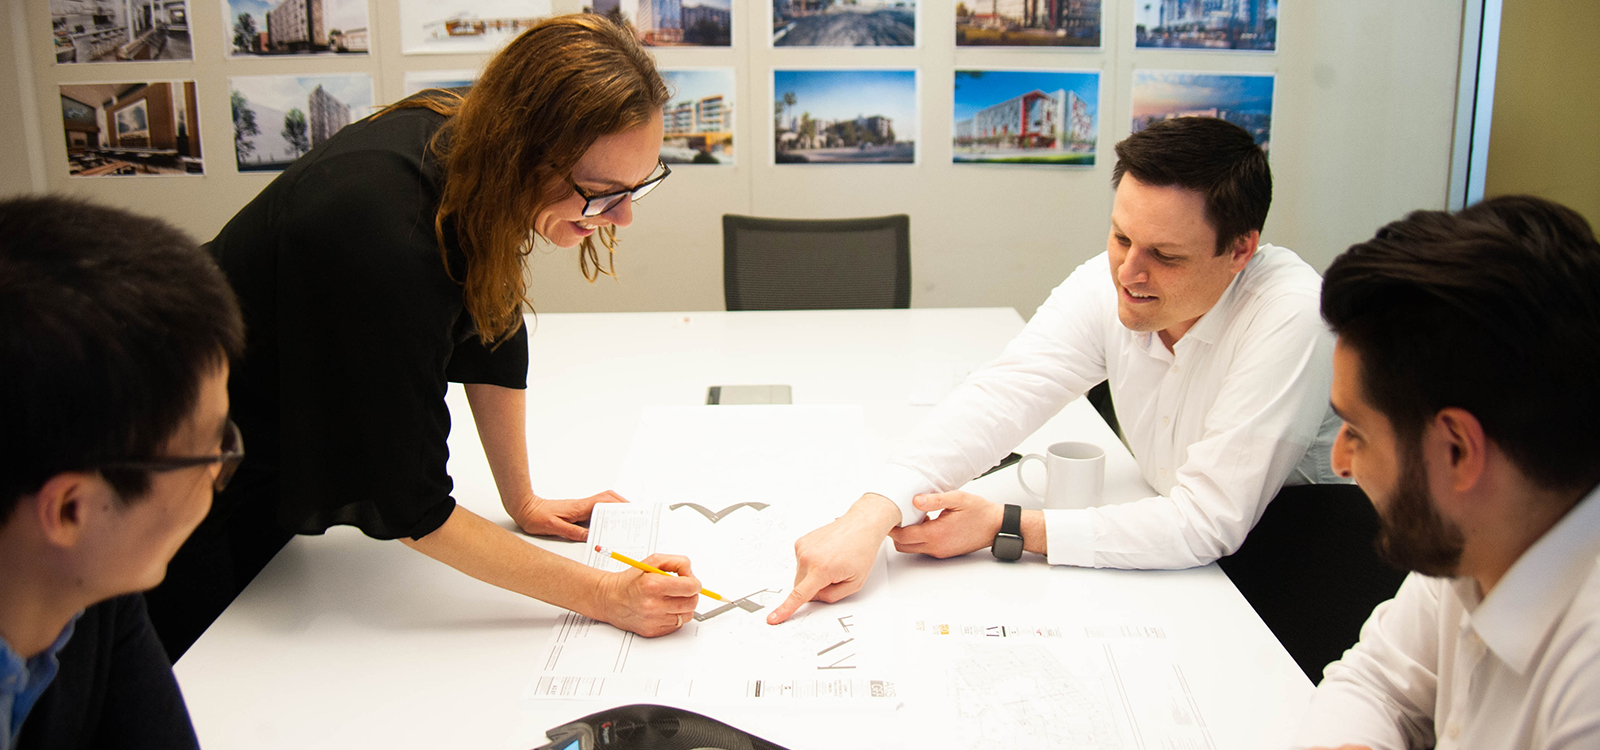 Two team members of California architect and hotel designers AXIS/GFA work on a design.